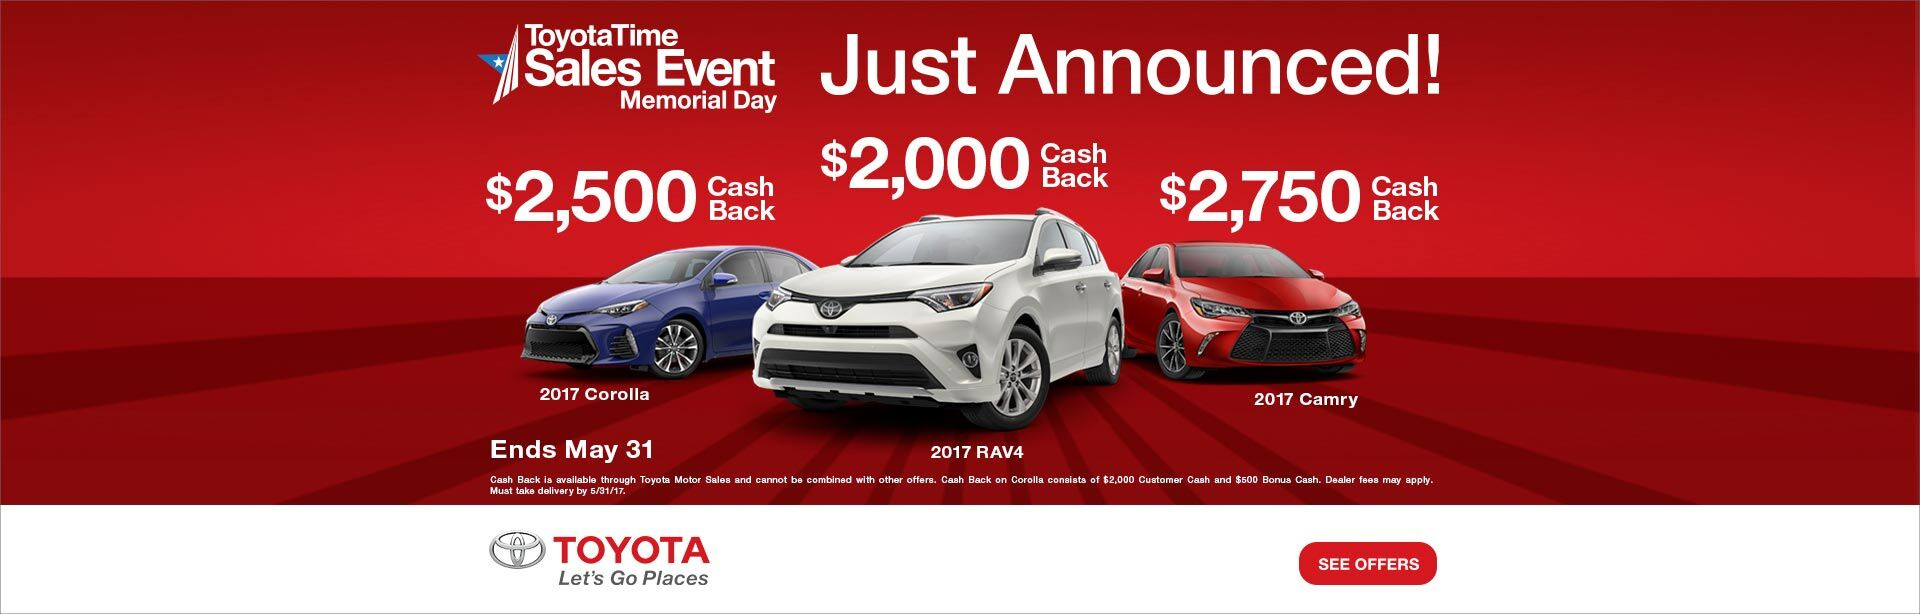 ToyotaTime Memorial Day